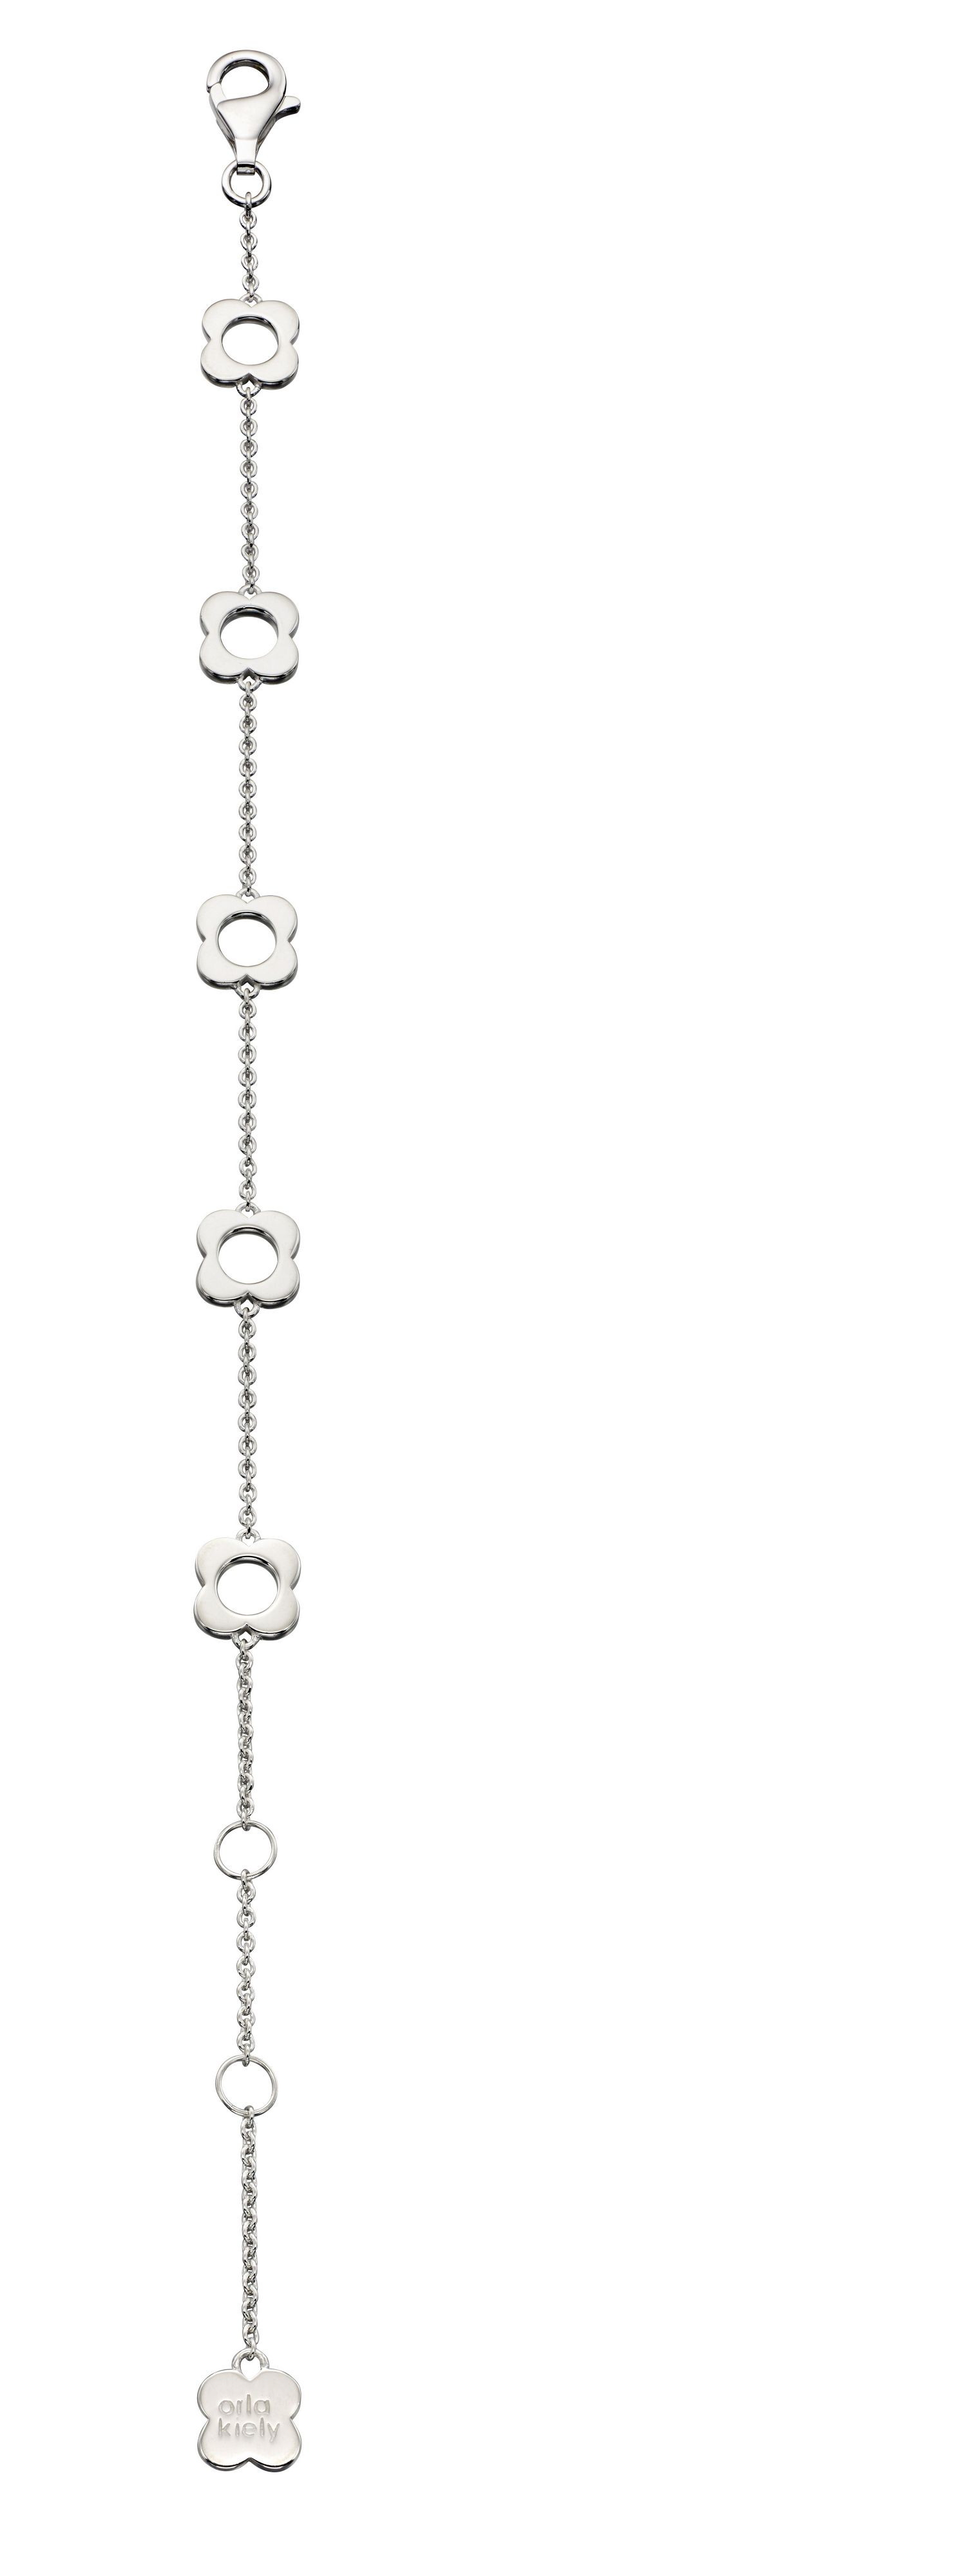 Orla Kiely Flora Four Point Flower Bracelet In Silver, Silver